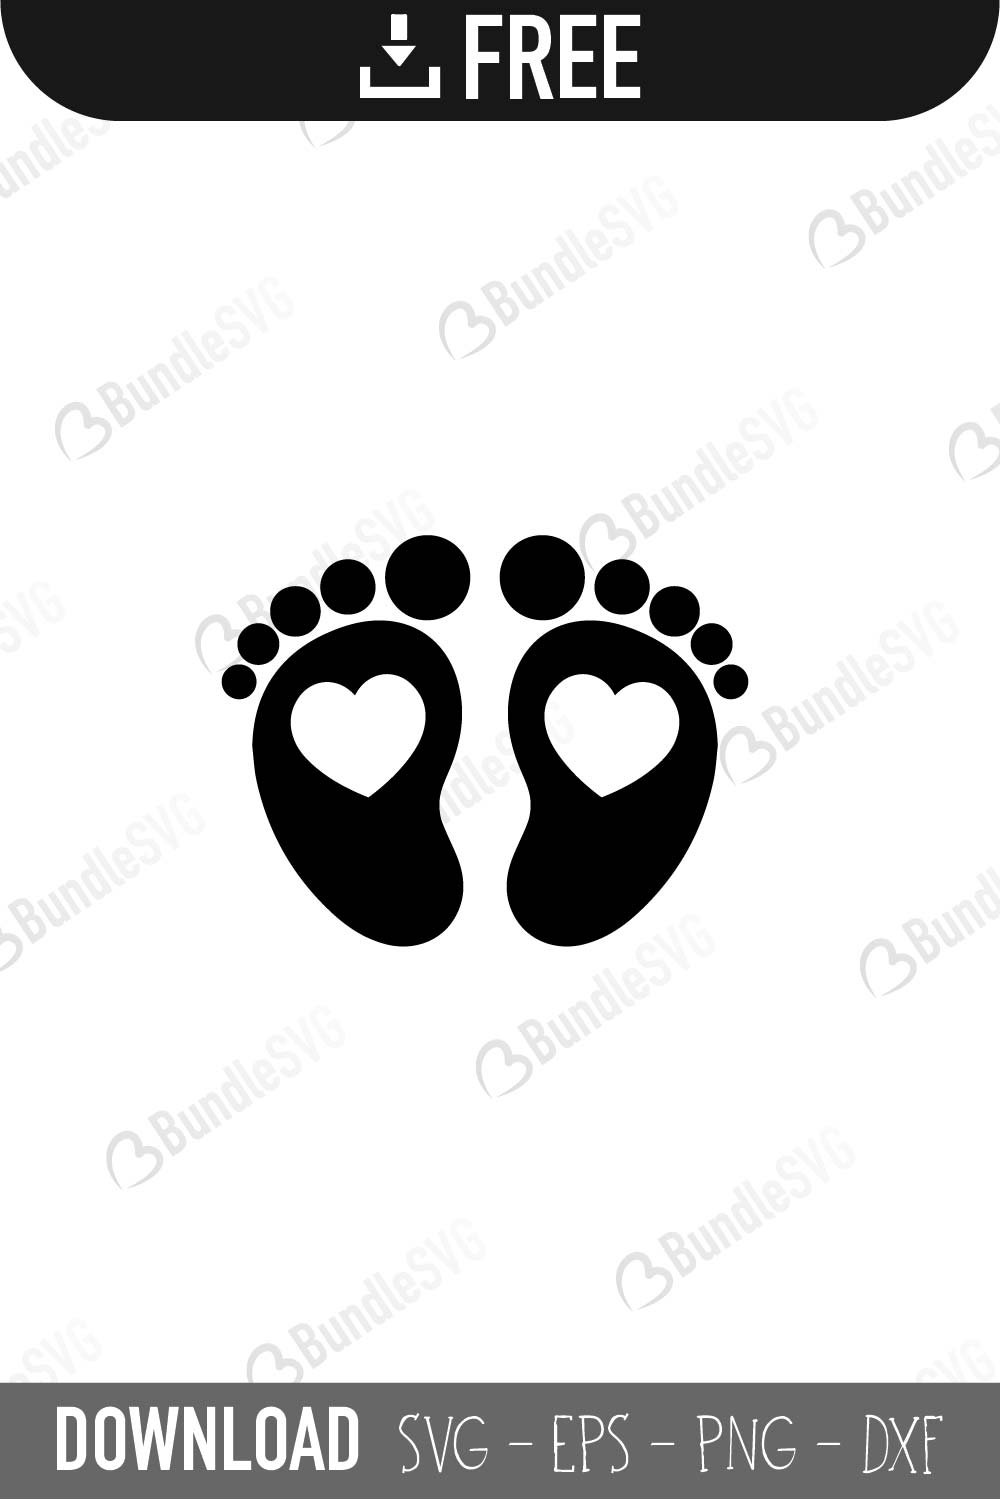 Baby Feet Svg Free - Free Transparent PNG Clipart Images Download